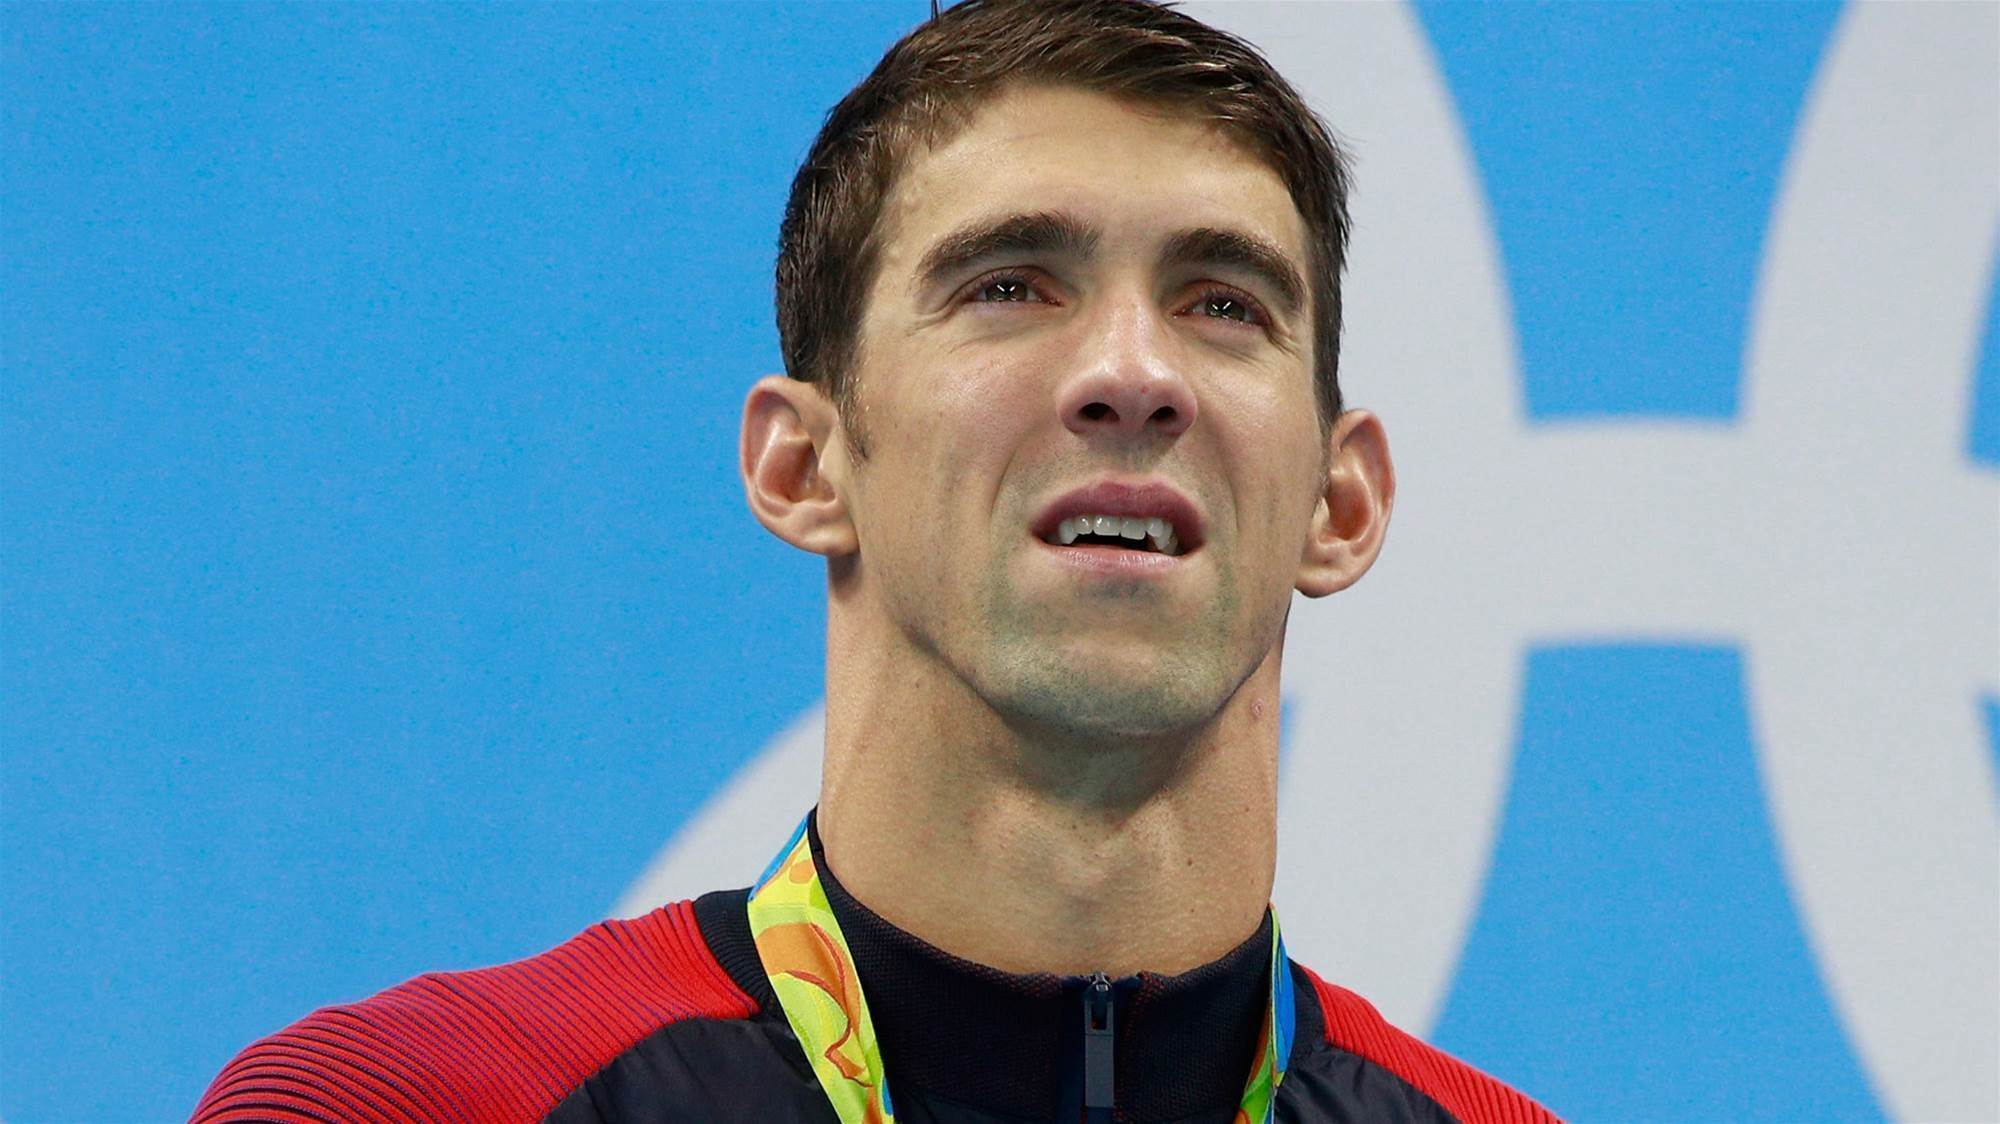 Michael Phelps races a Great White Shark